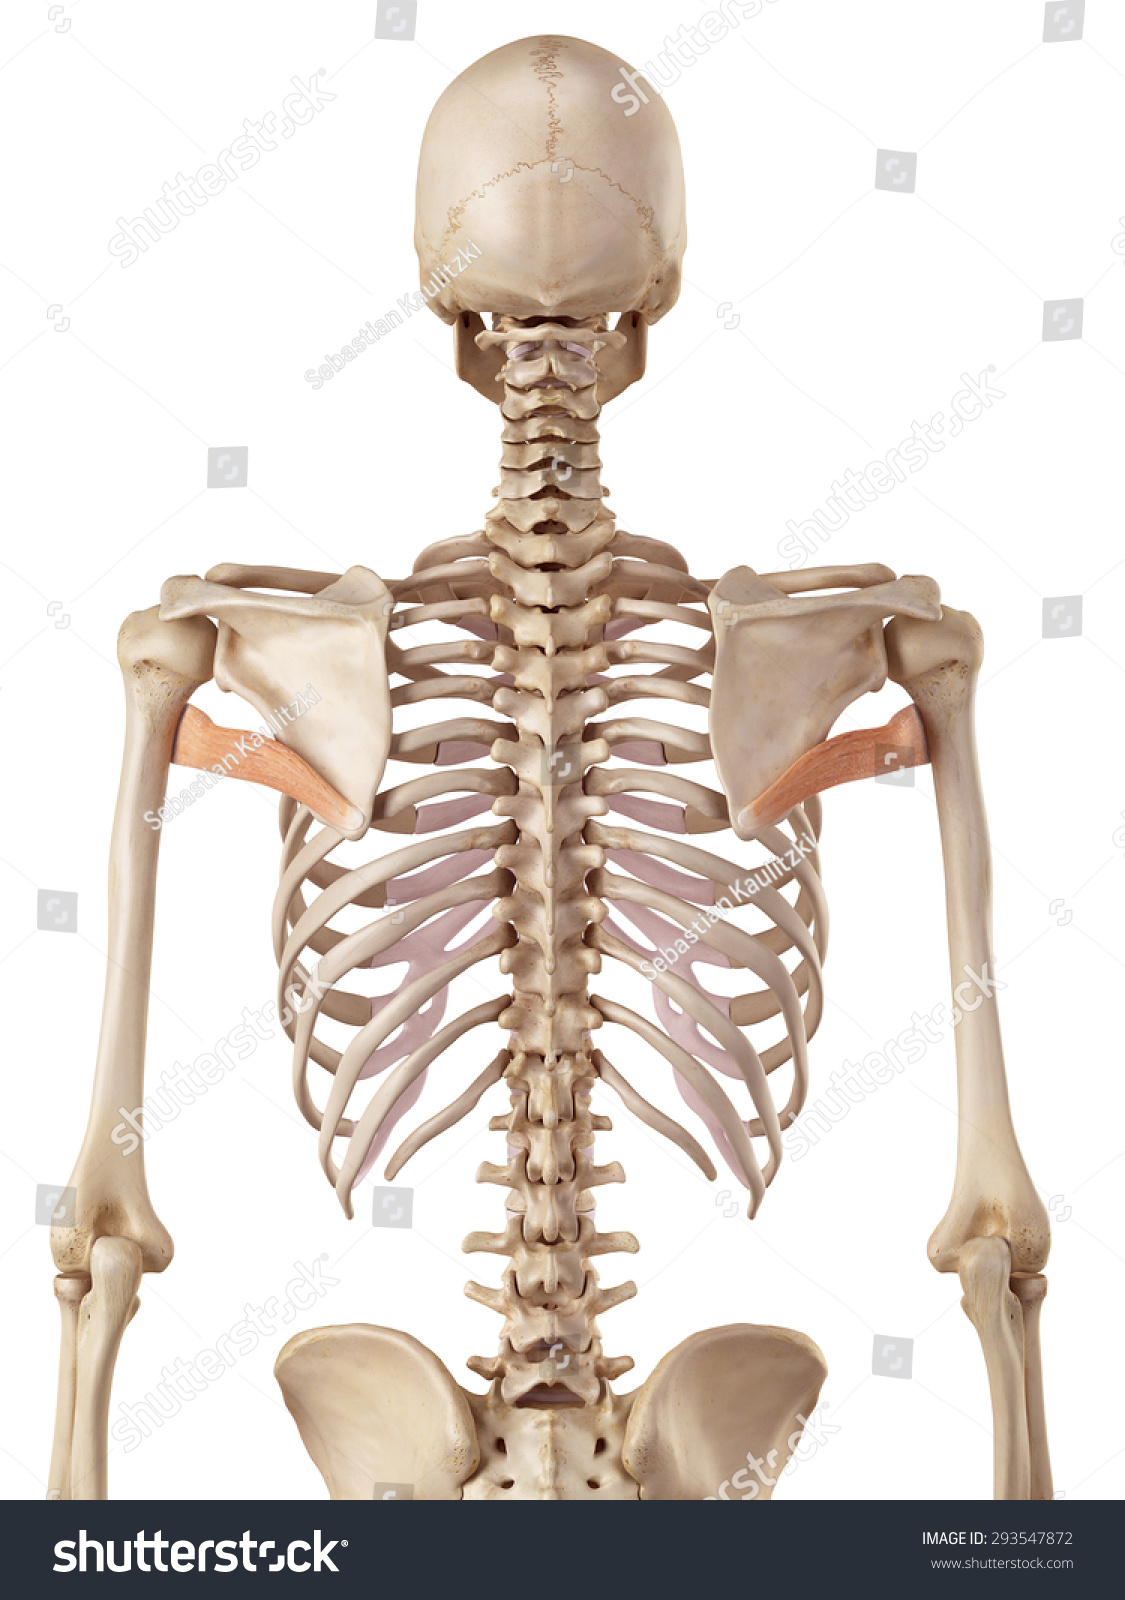 Royalty Free Stock Illustration Of Medical Accurate Illustration